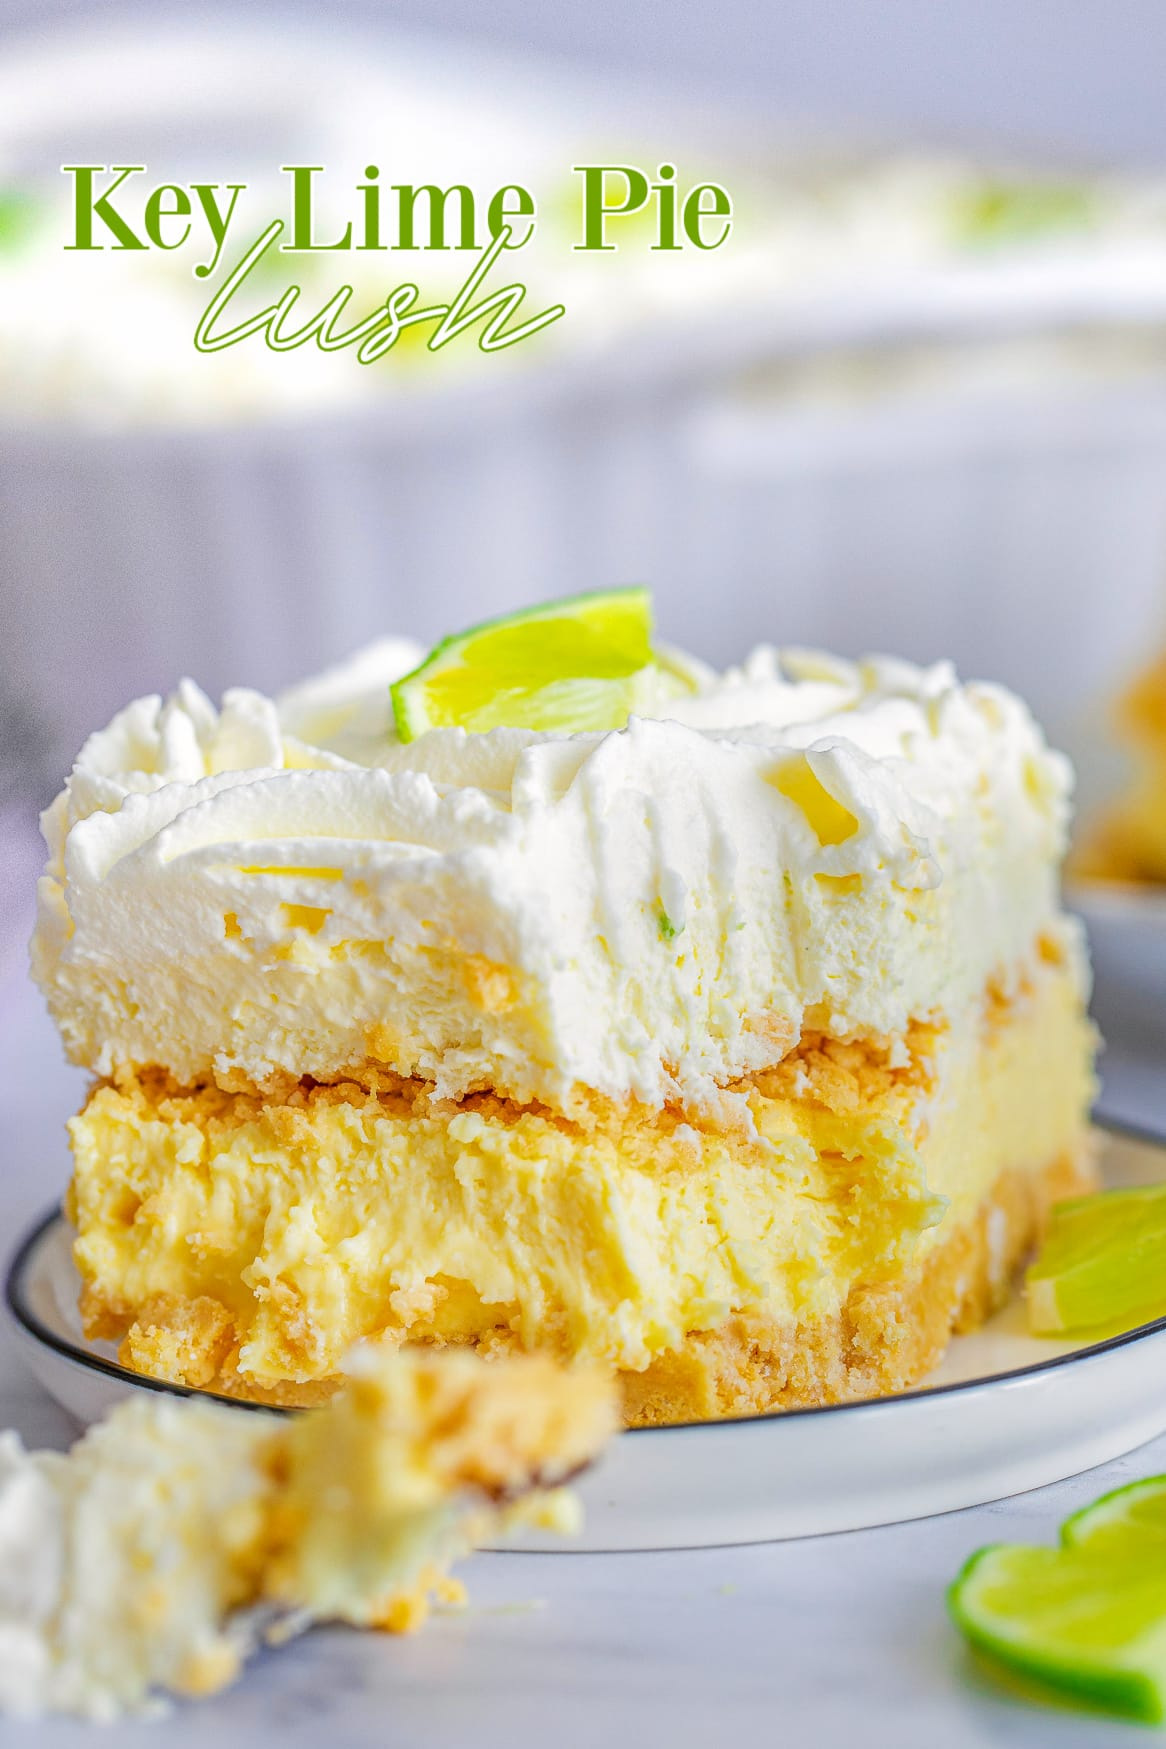 key lime pie lush recipe on plate with bite taken and text overlay